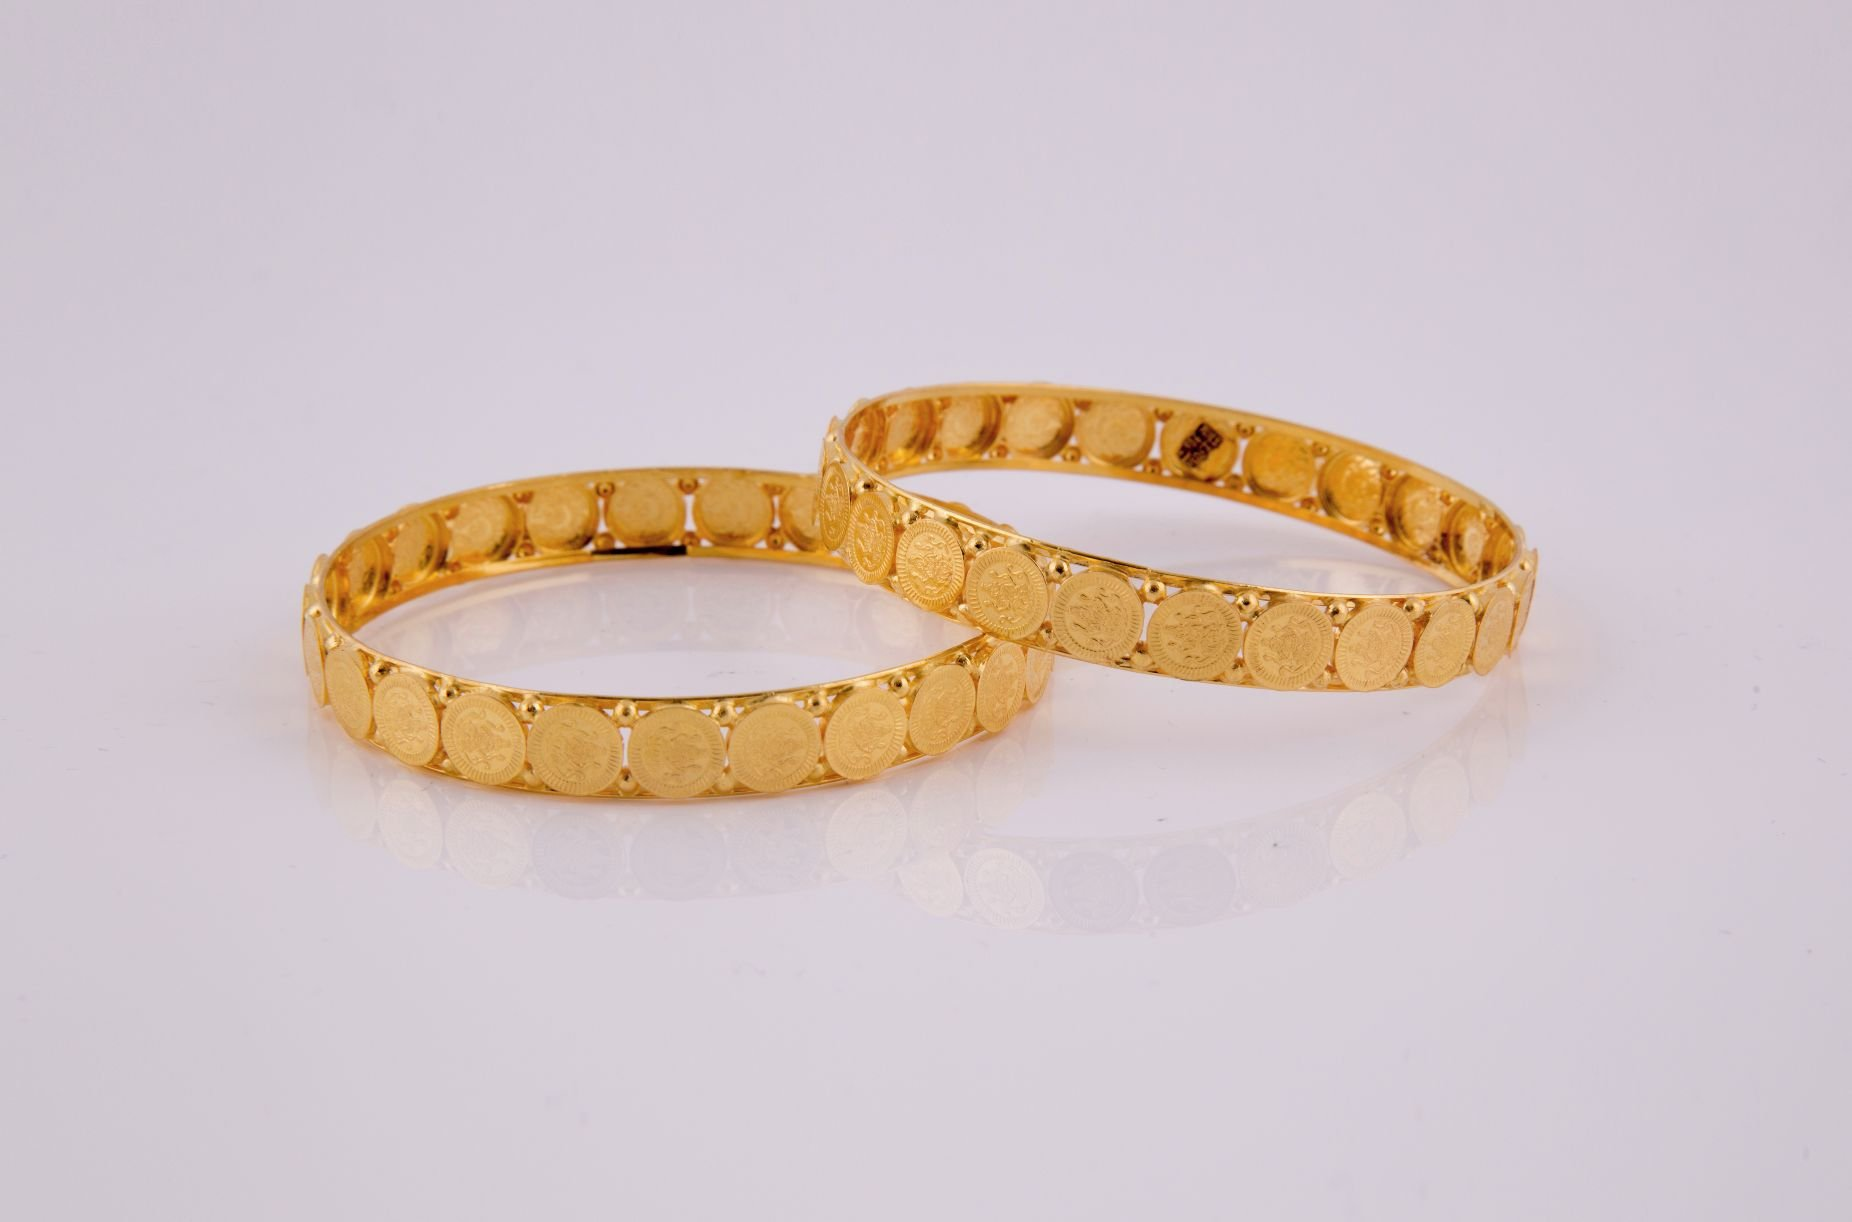 titan gold tanishq bangles buy kt product studded for bracelet id yellow online kids bangle plain